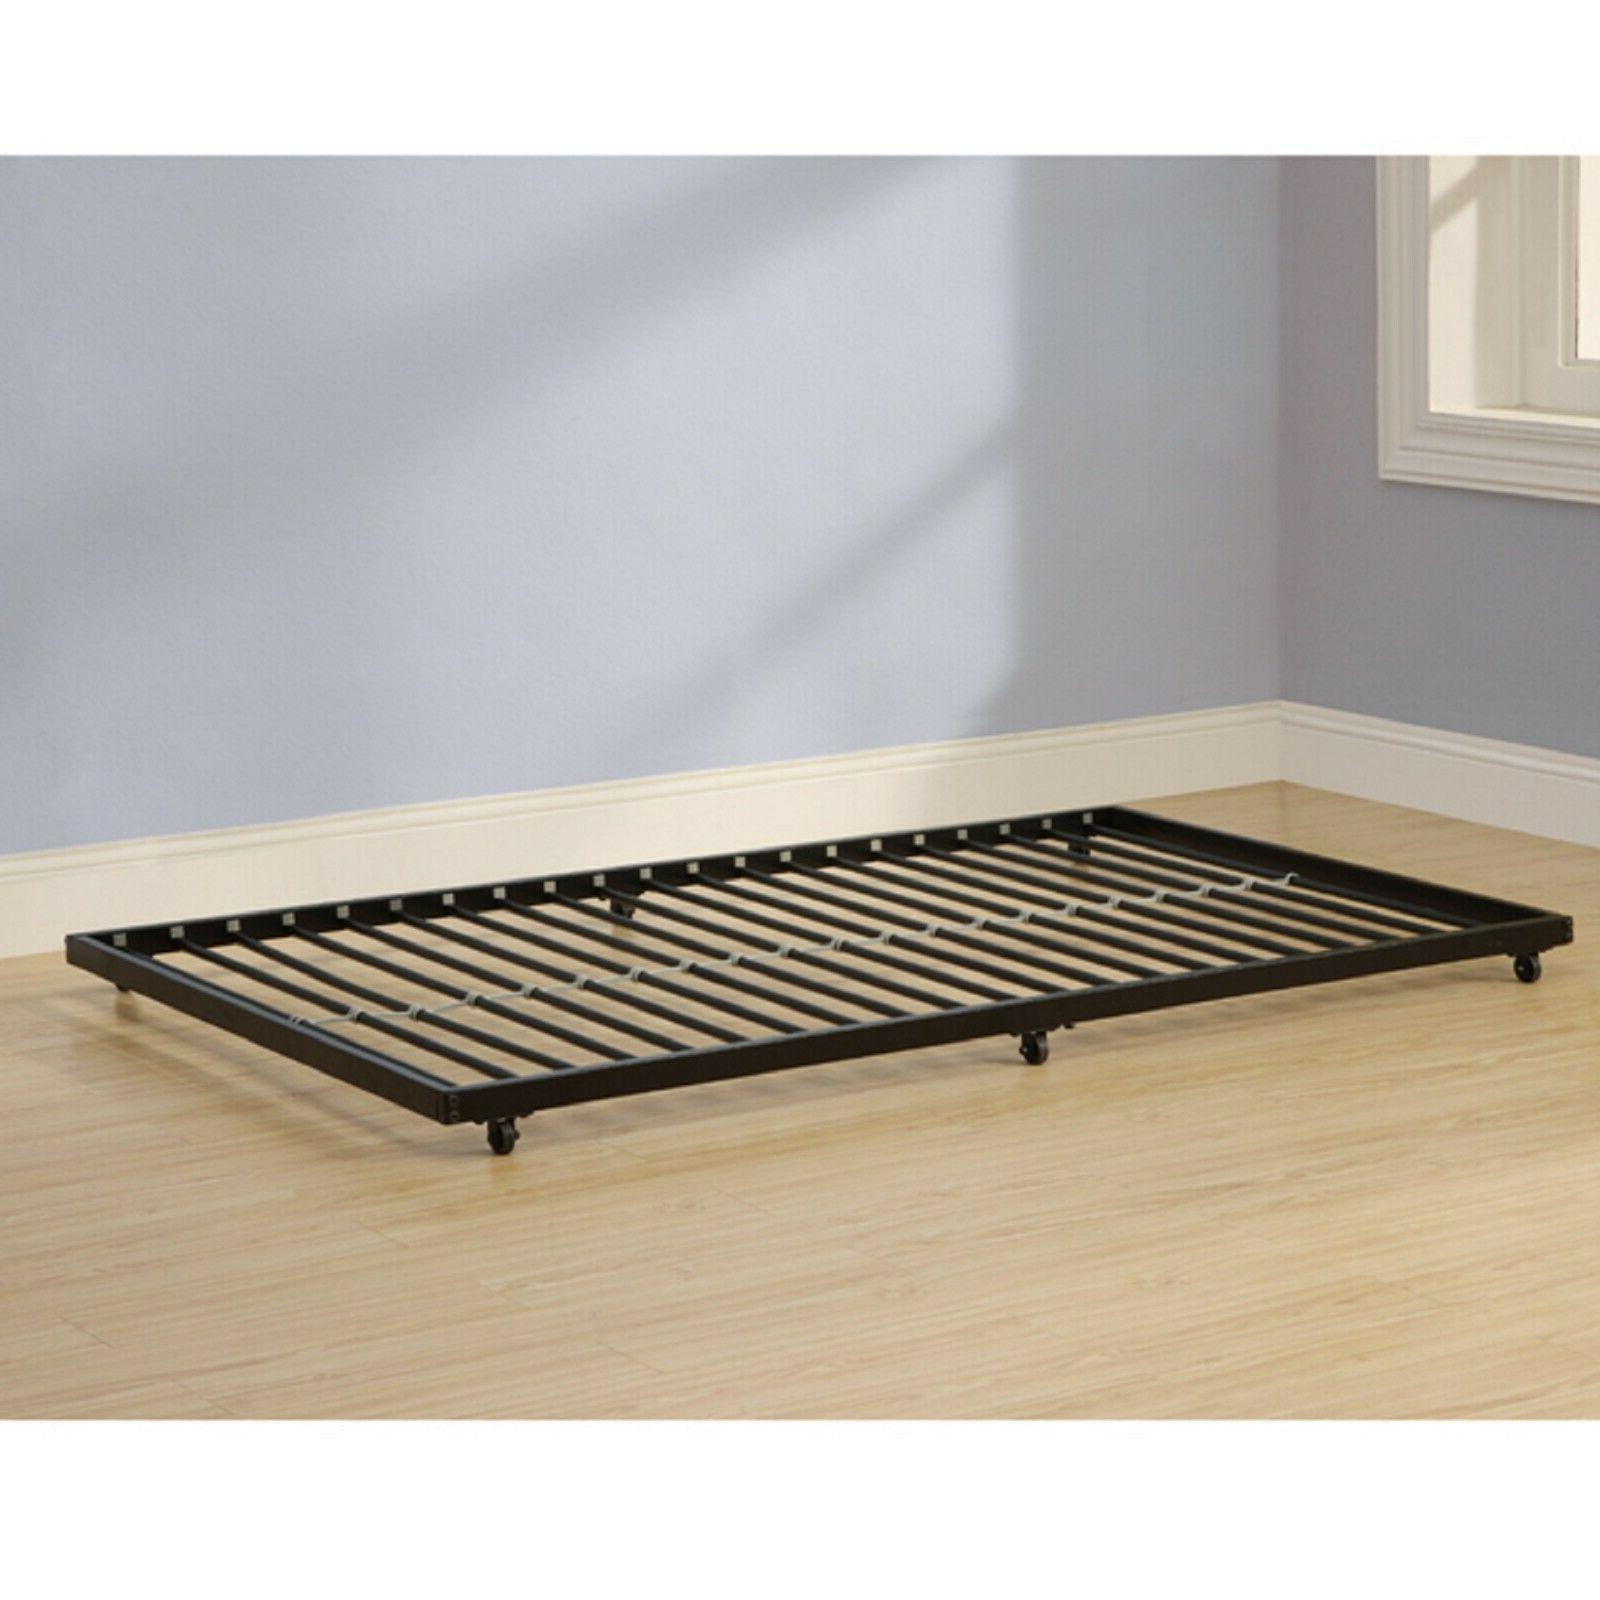 BUNK KIDS Black Metal Trundle Space